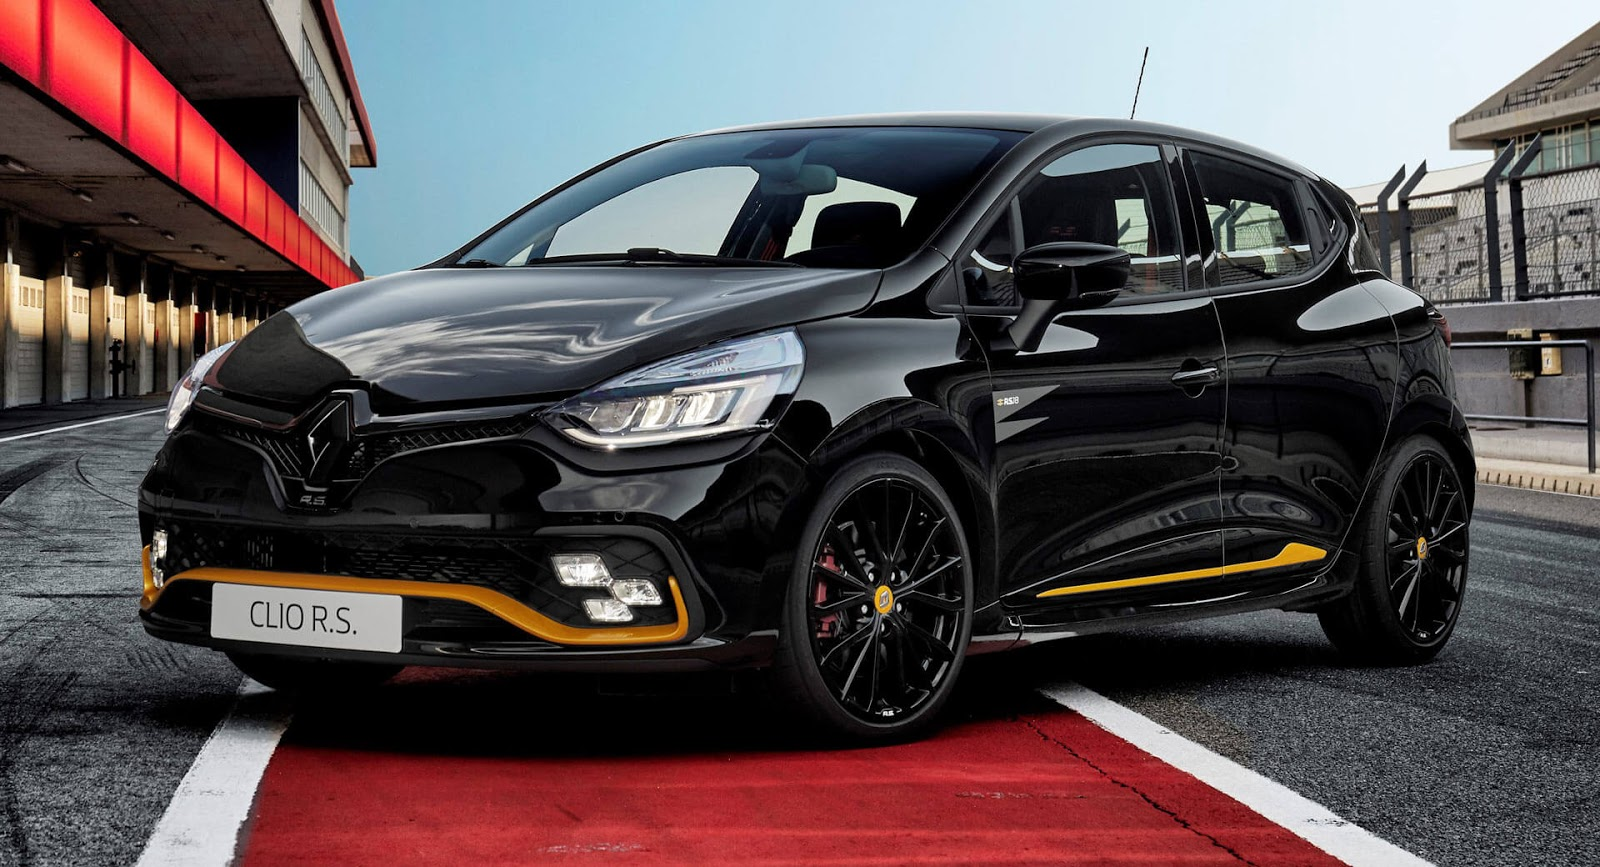 Maybach Symbol >> Renault Clio R.S. 18 Adds F1 Theme for Special Edition - autoevolution